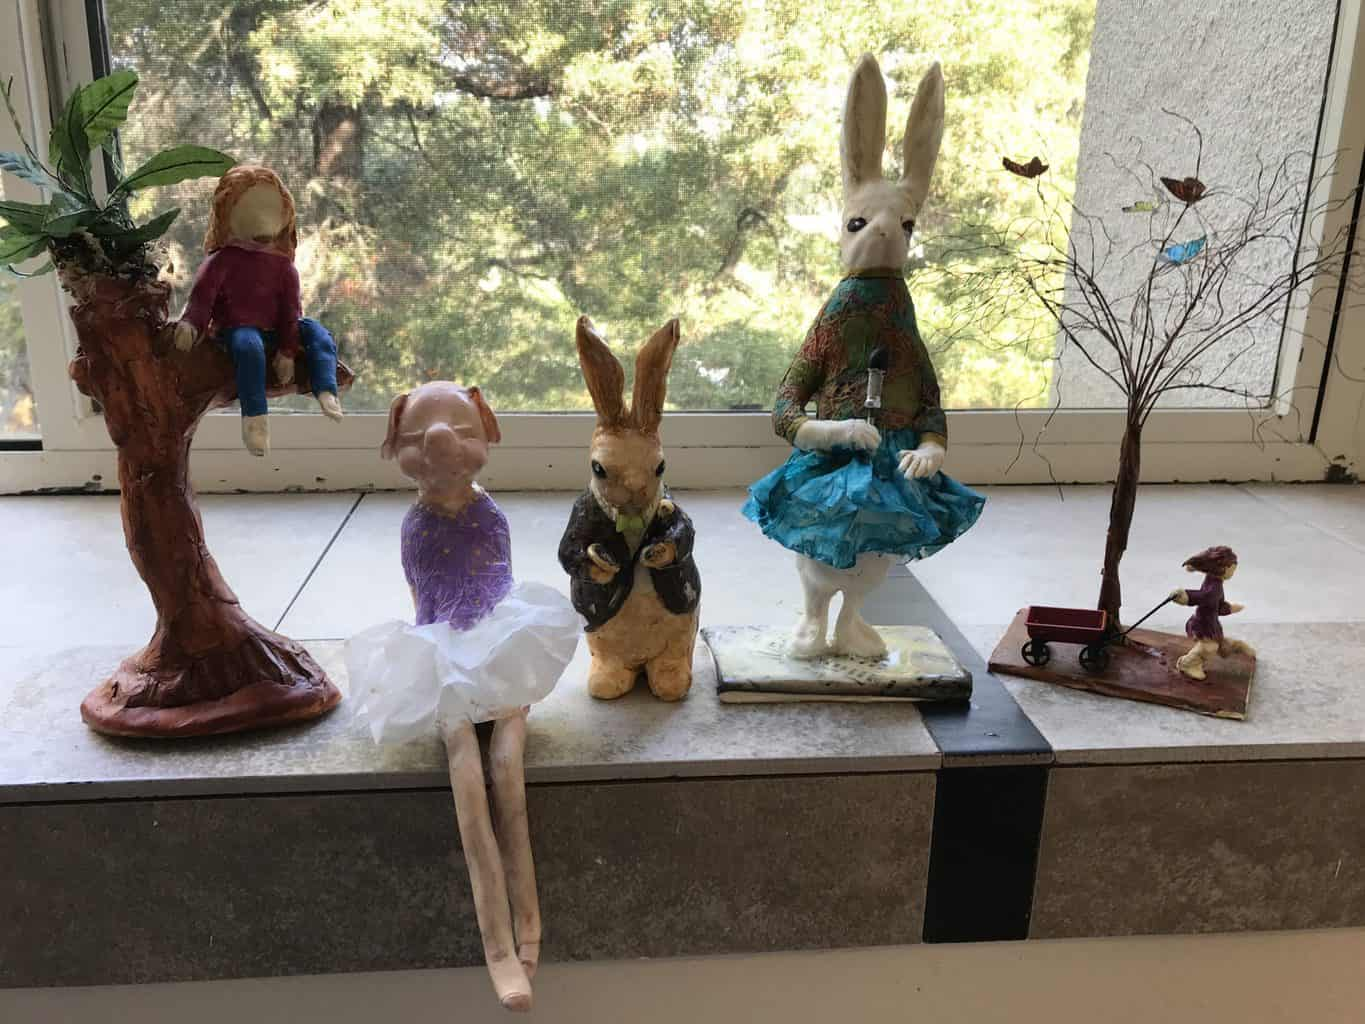 Small animal figures in paper mache